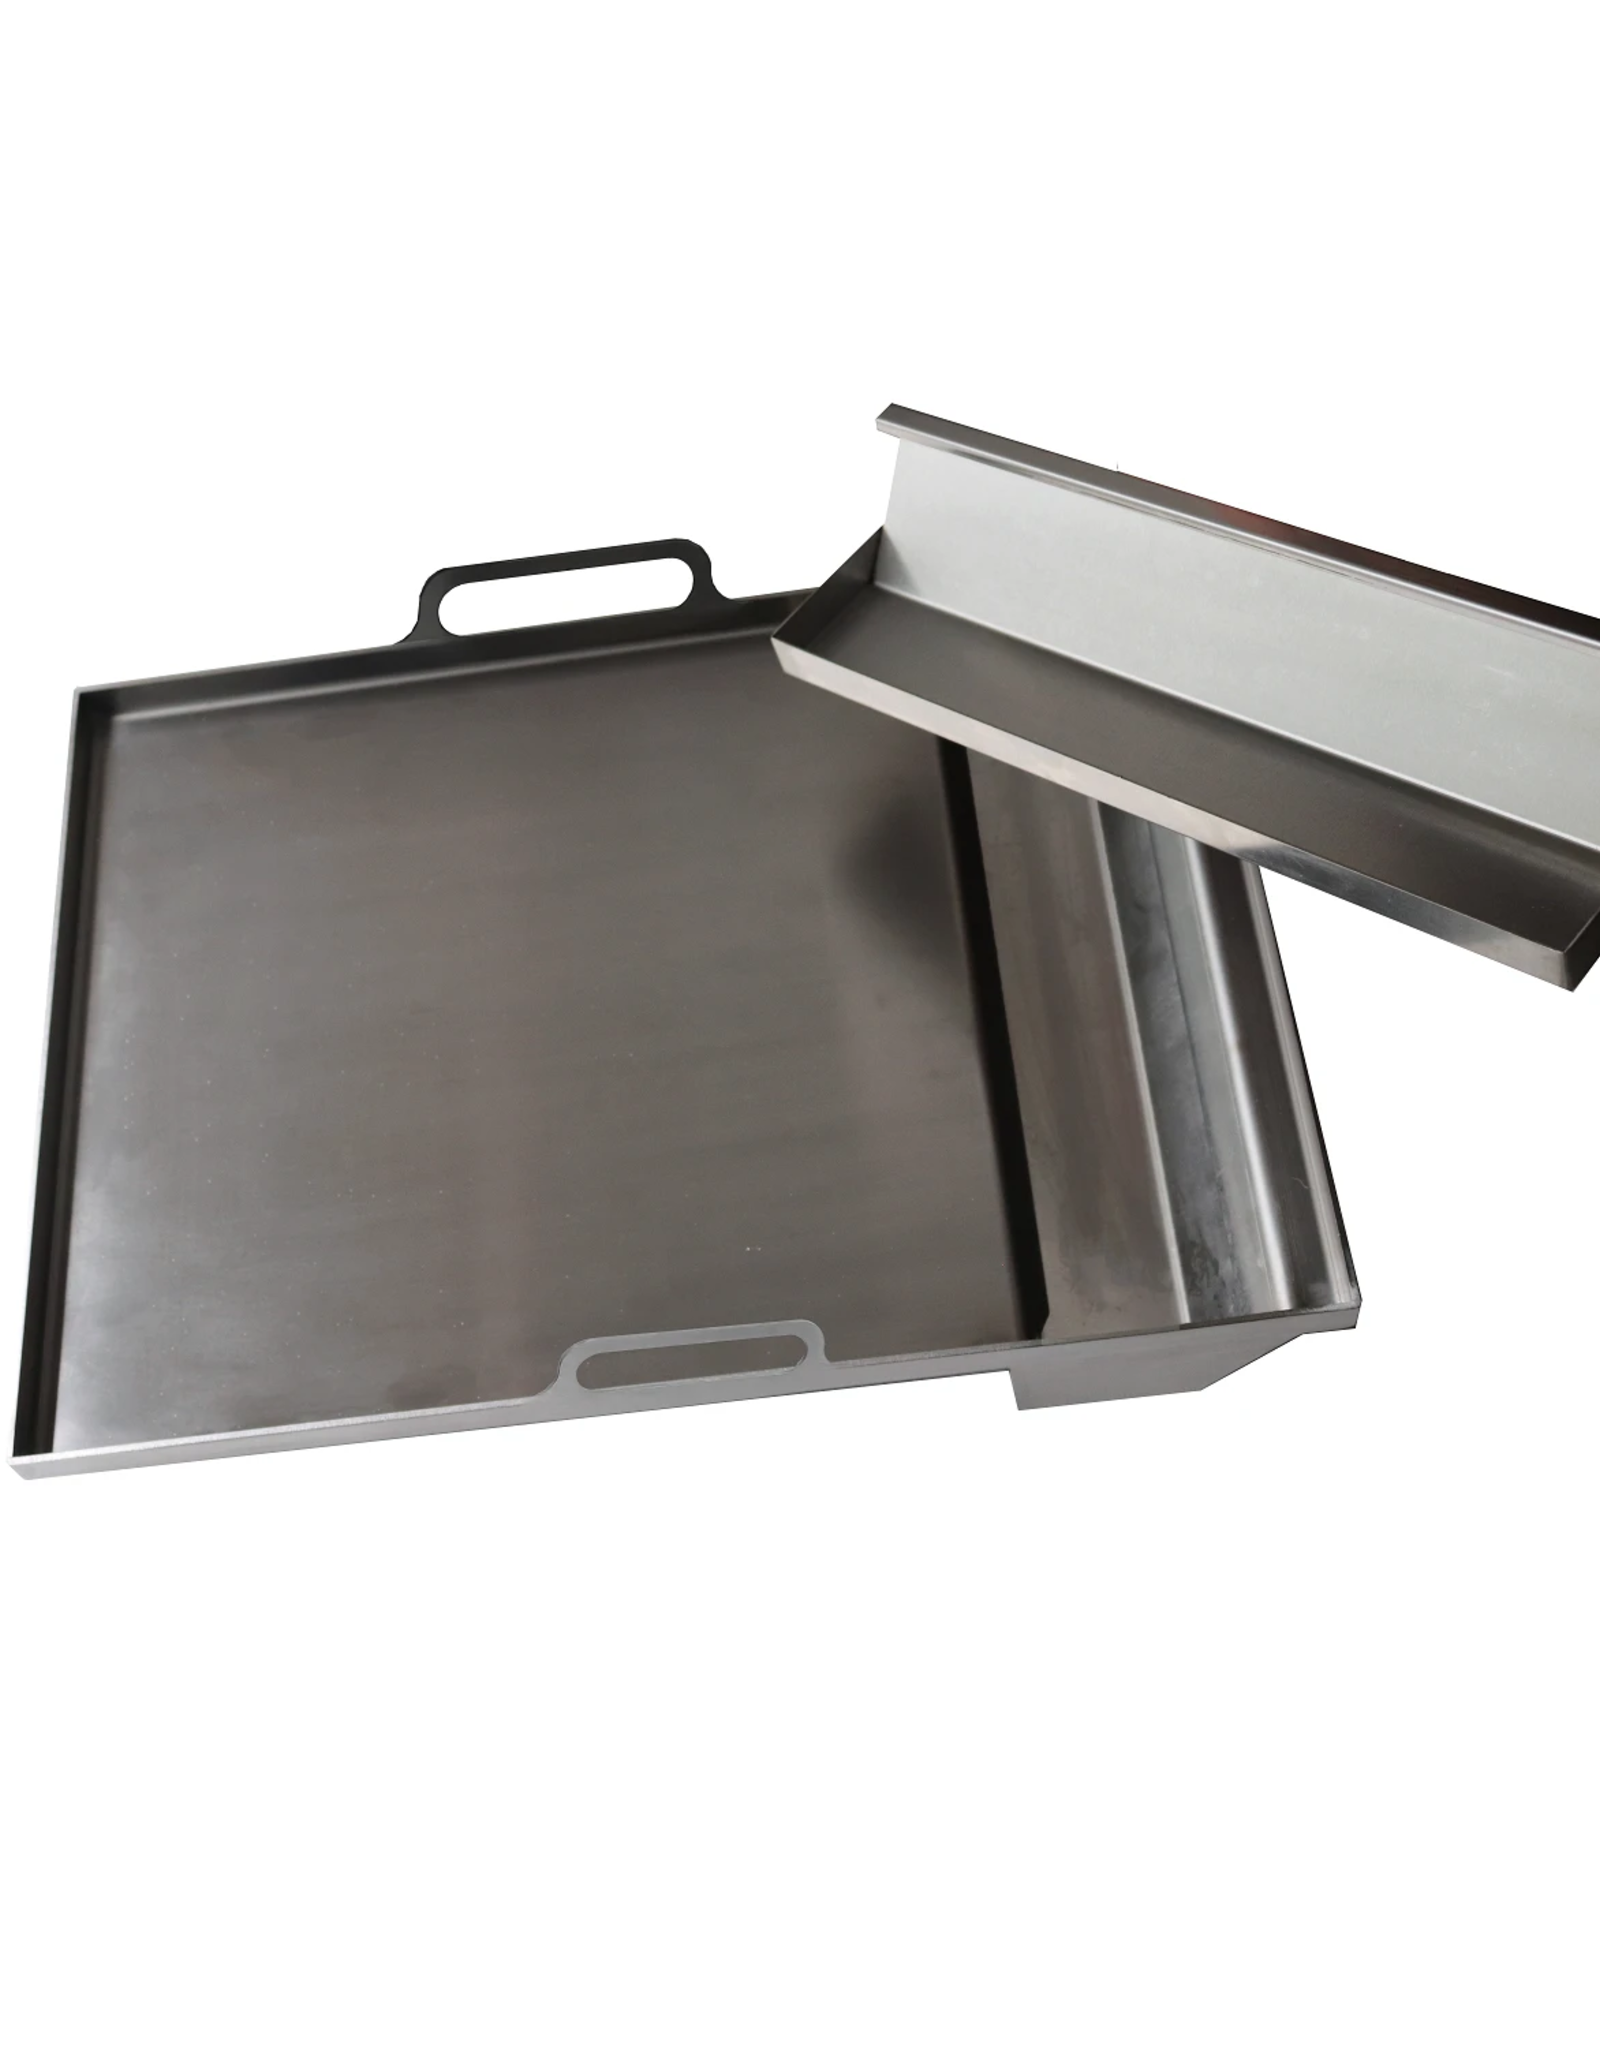 Renaissance Cooking Systems Renaissance Cooking Systems Dual Plate Stainless Steel Griddle - RSSG4